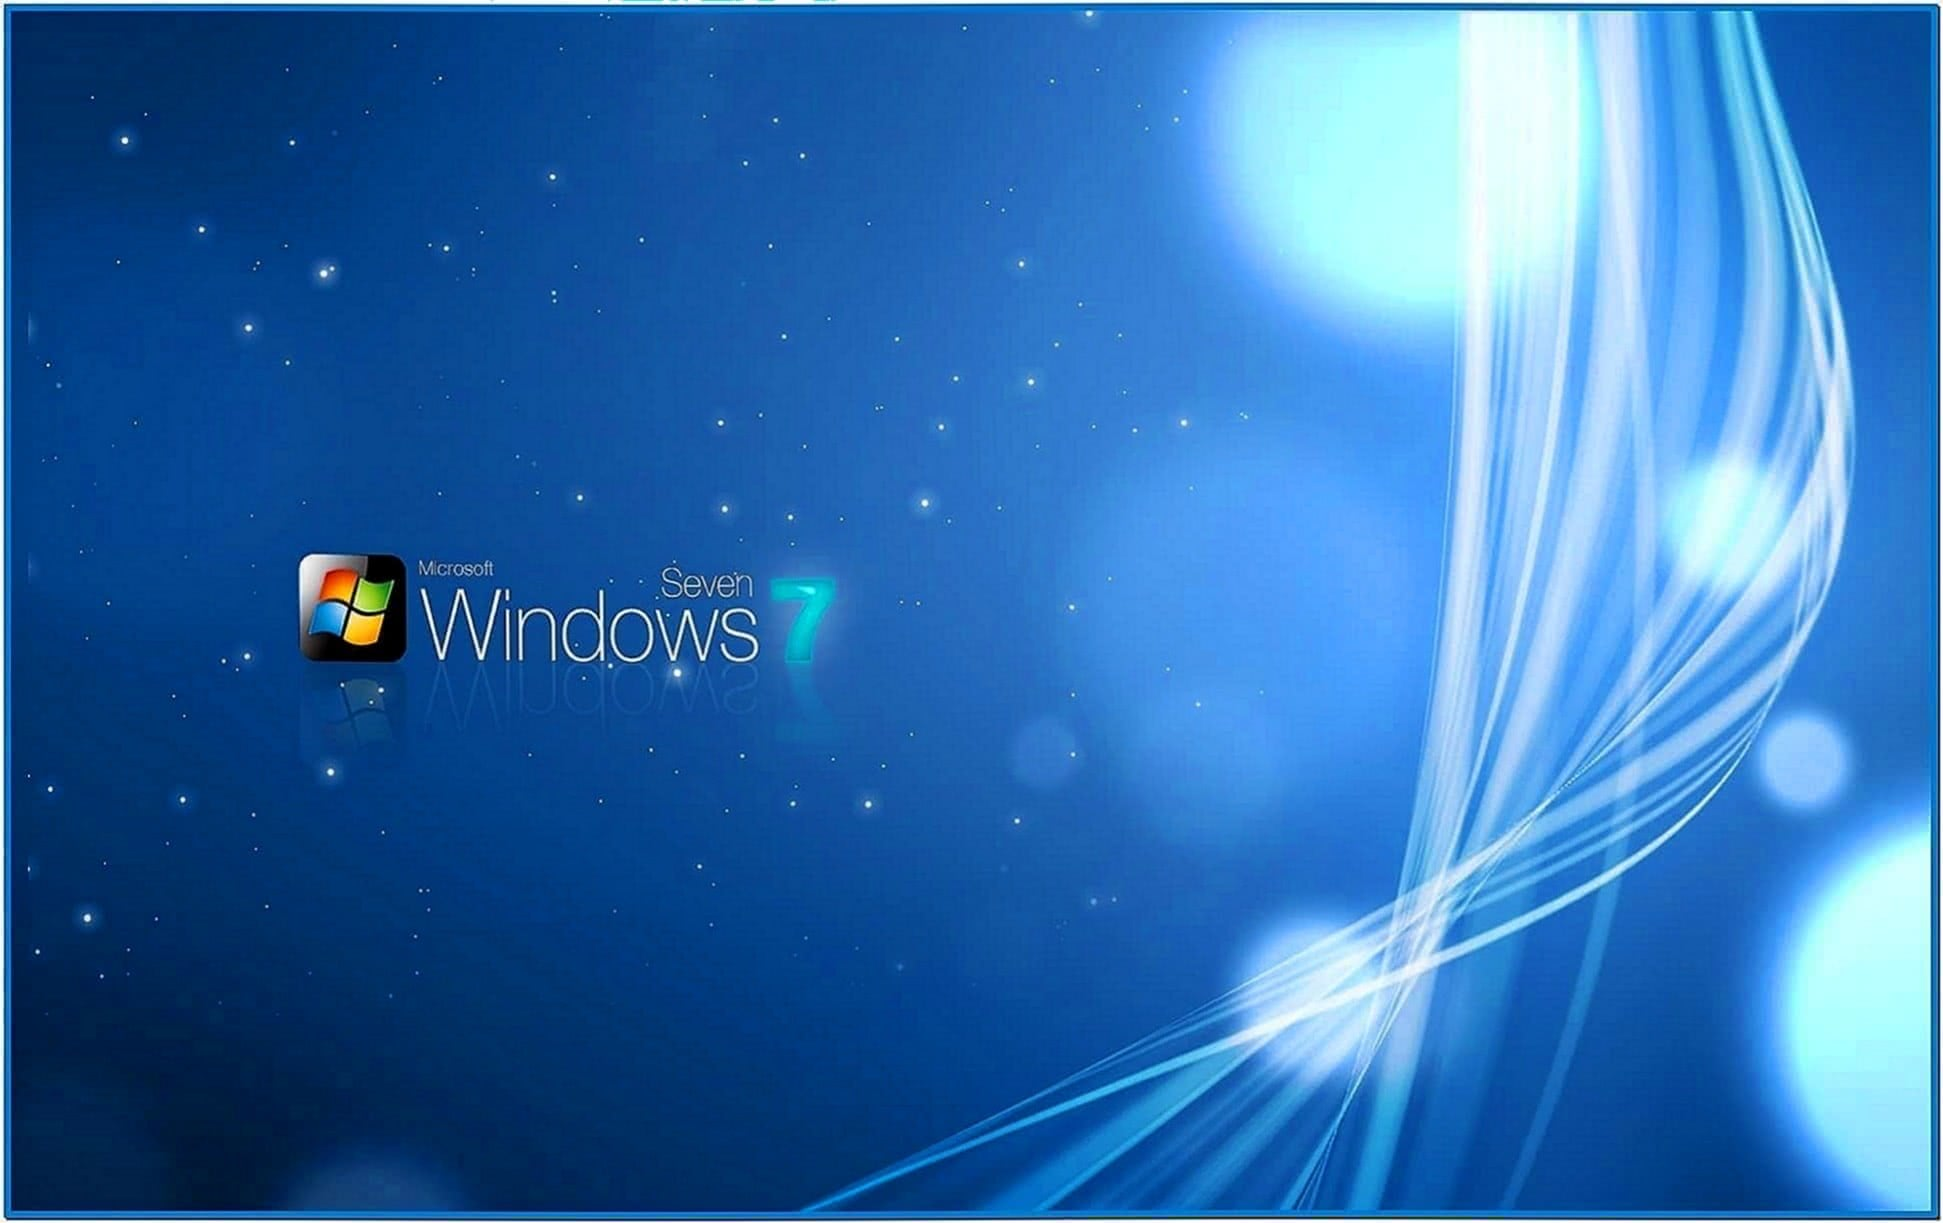 screensavers windows 7 64bit - photo #10